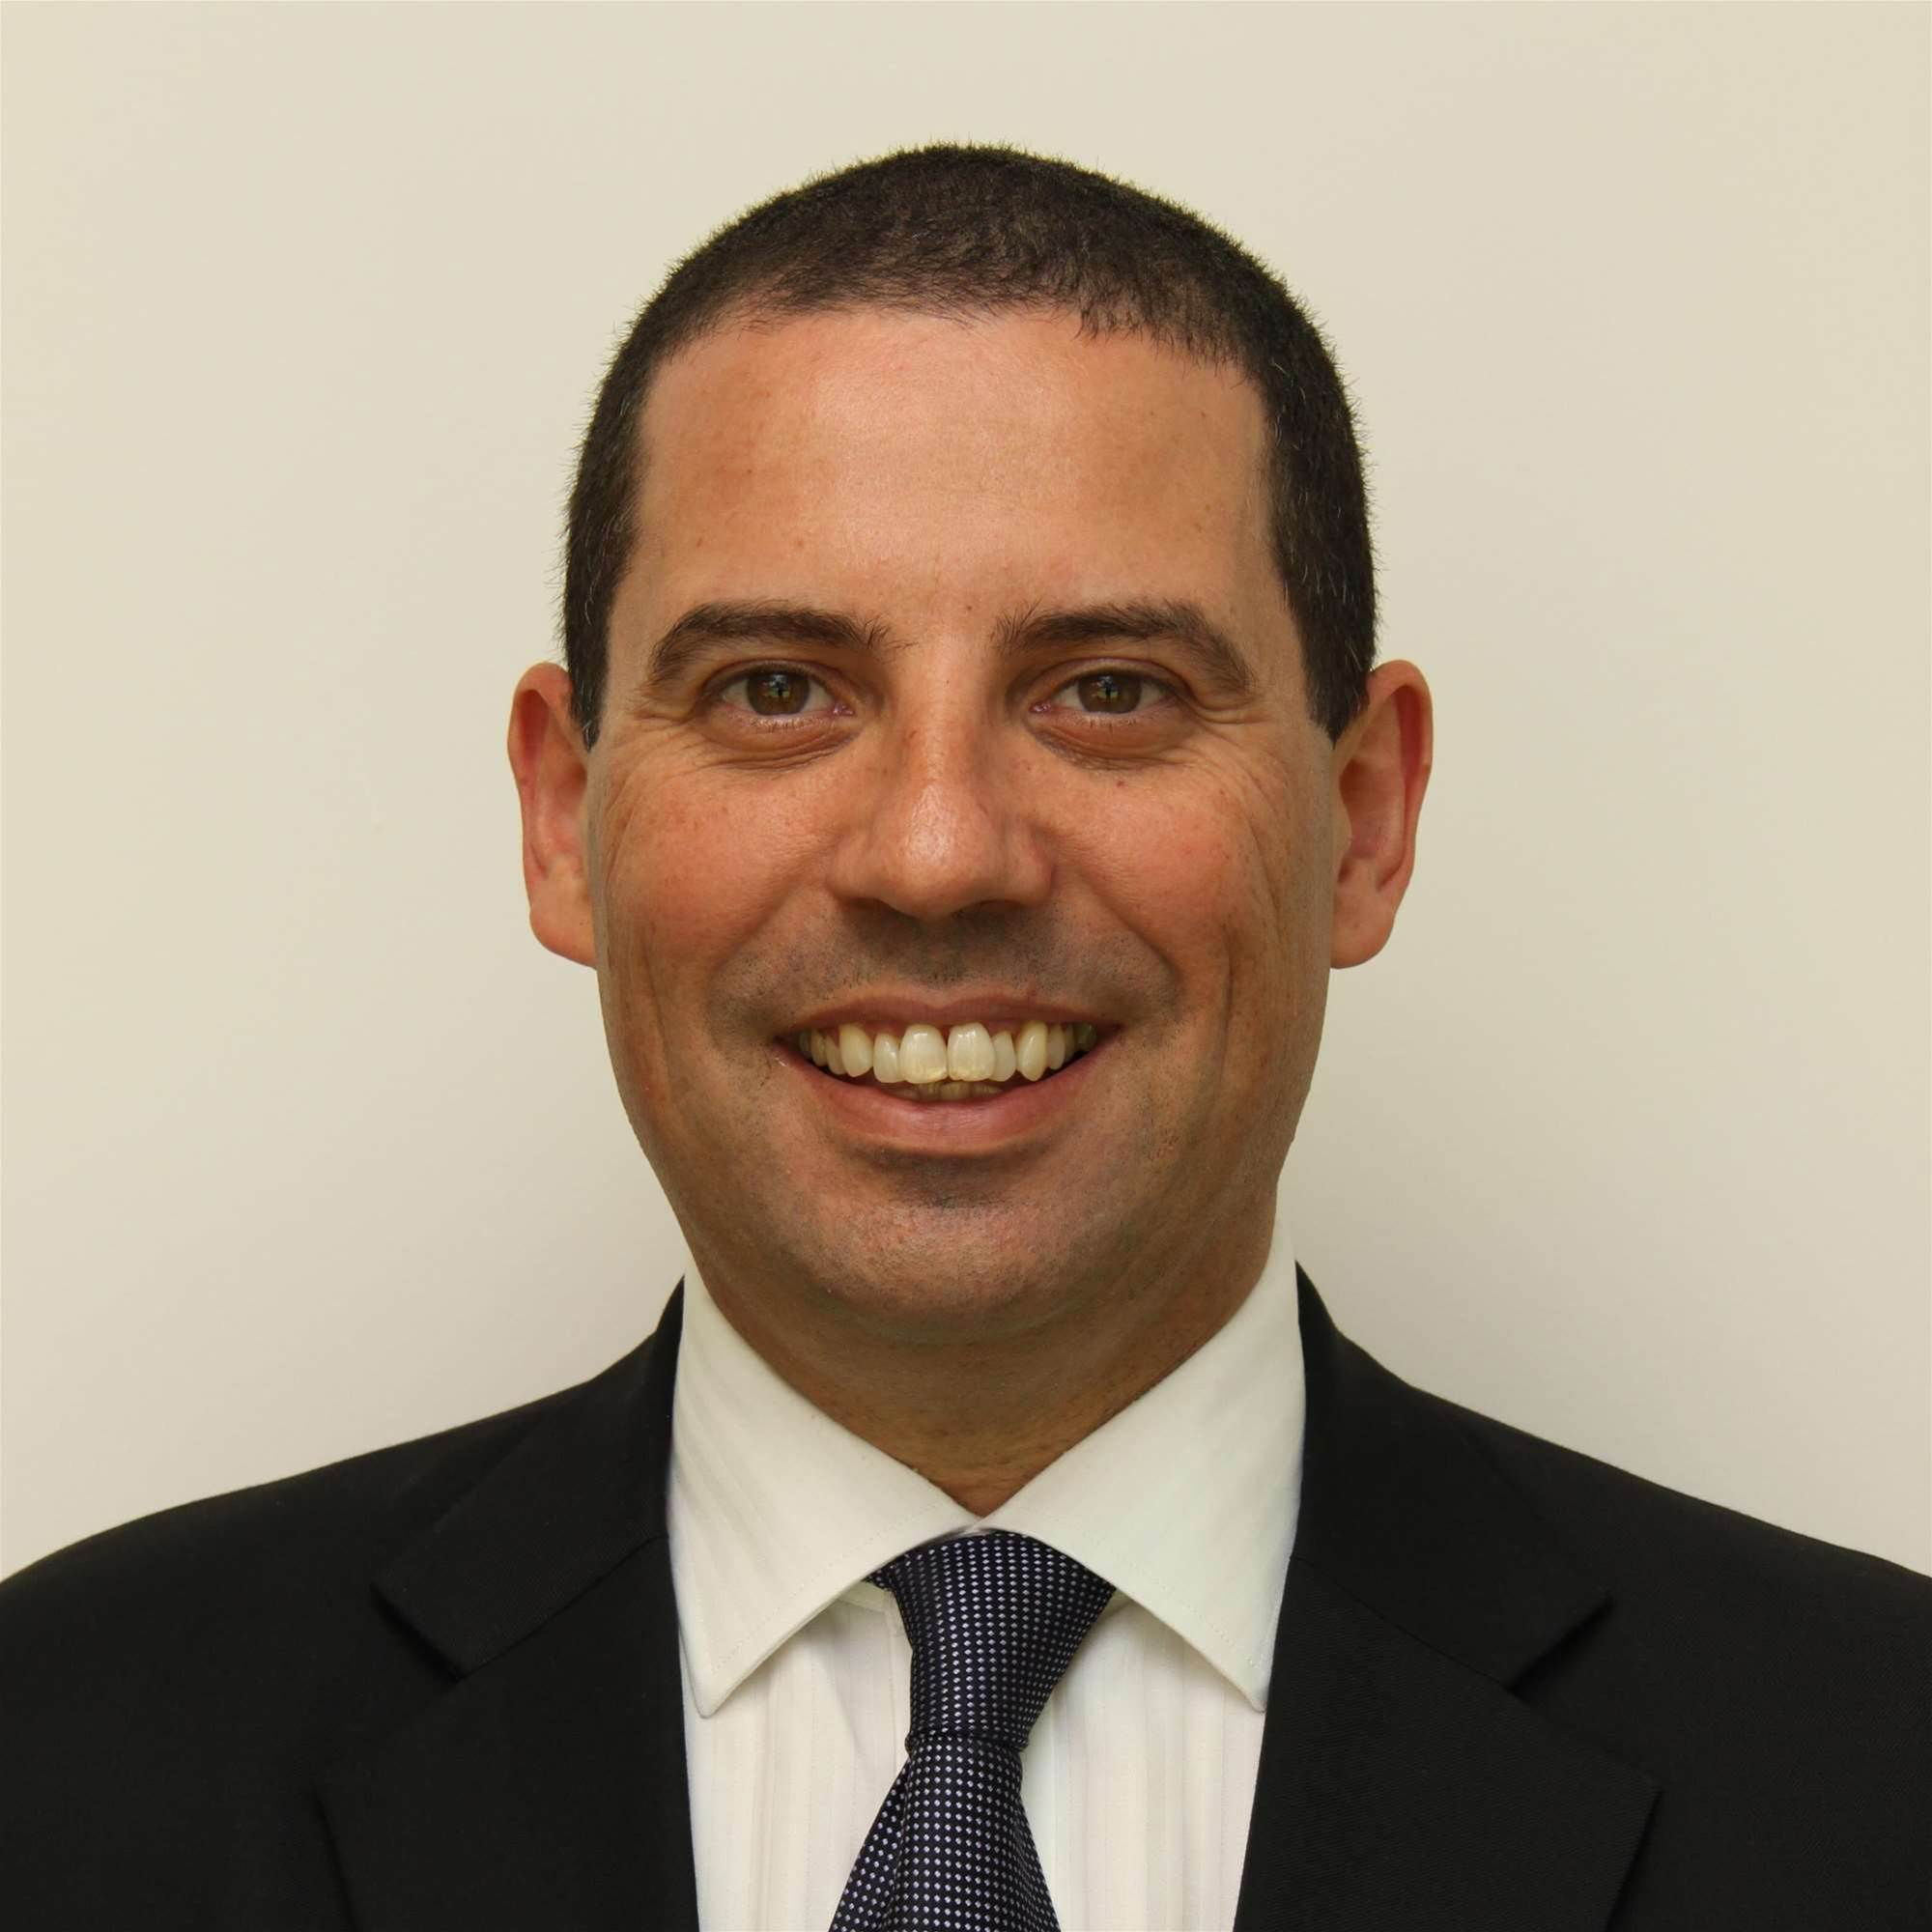 Nikoletatos named CIO of La Trobe University